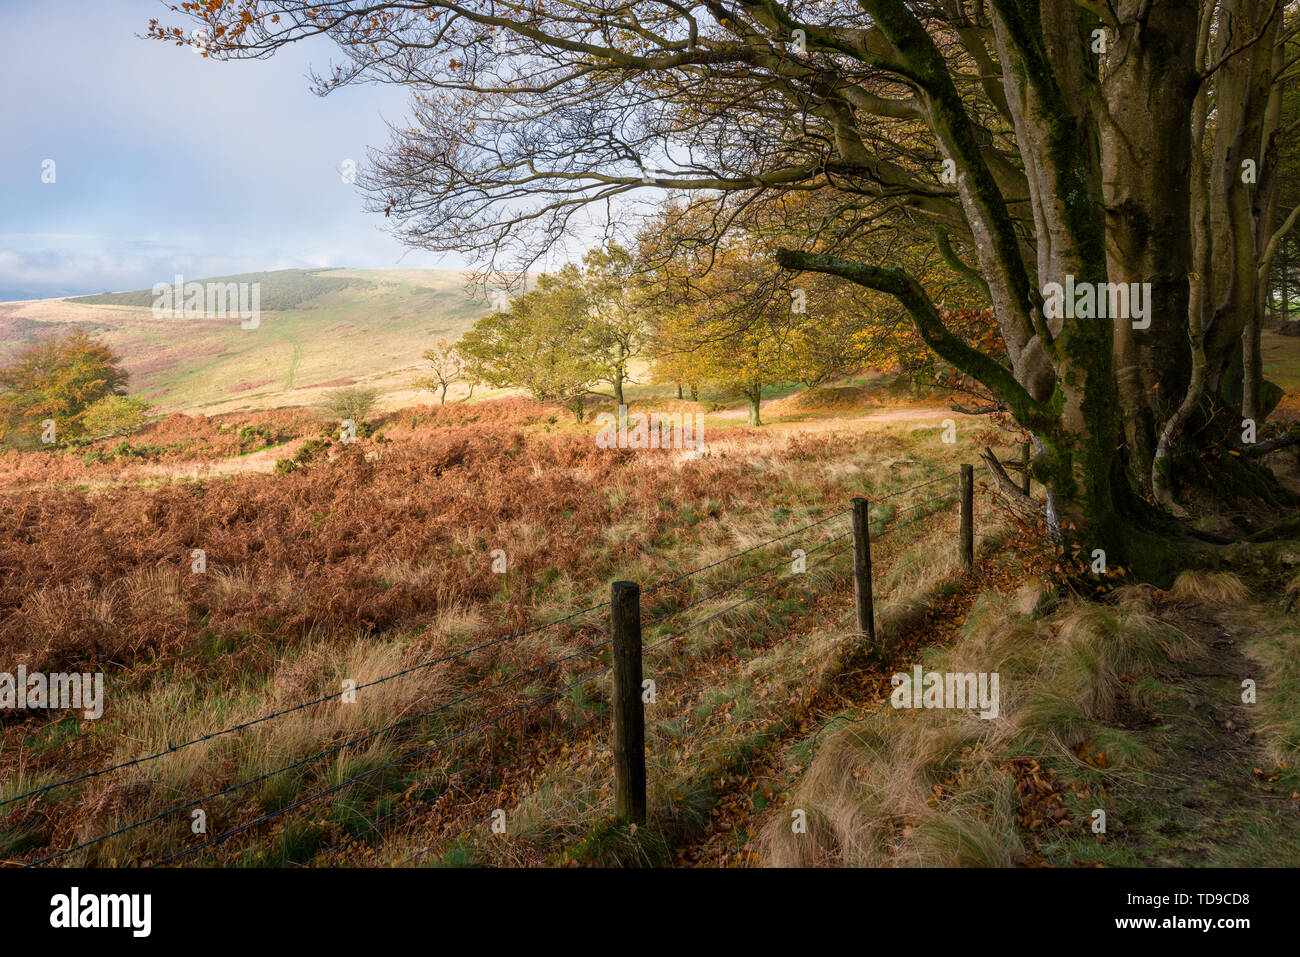 Autumnal view of Great Hill viewed from Drove Road in the Quantock Hills Area of Outstanding Natural Beauty, Somerset, England. - Stock Image